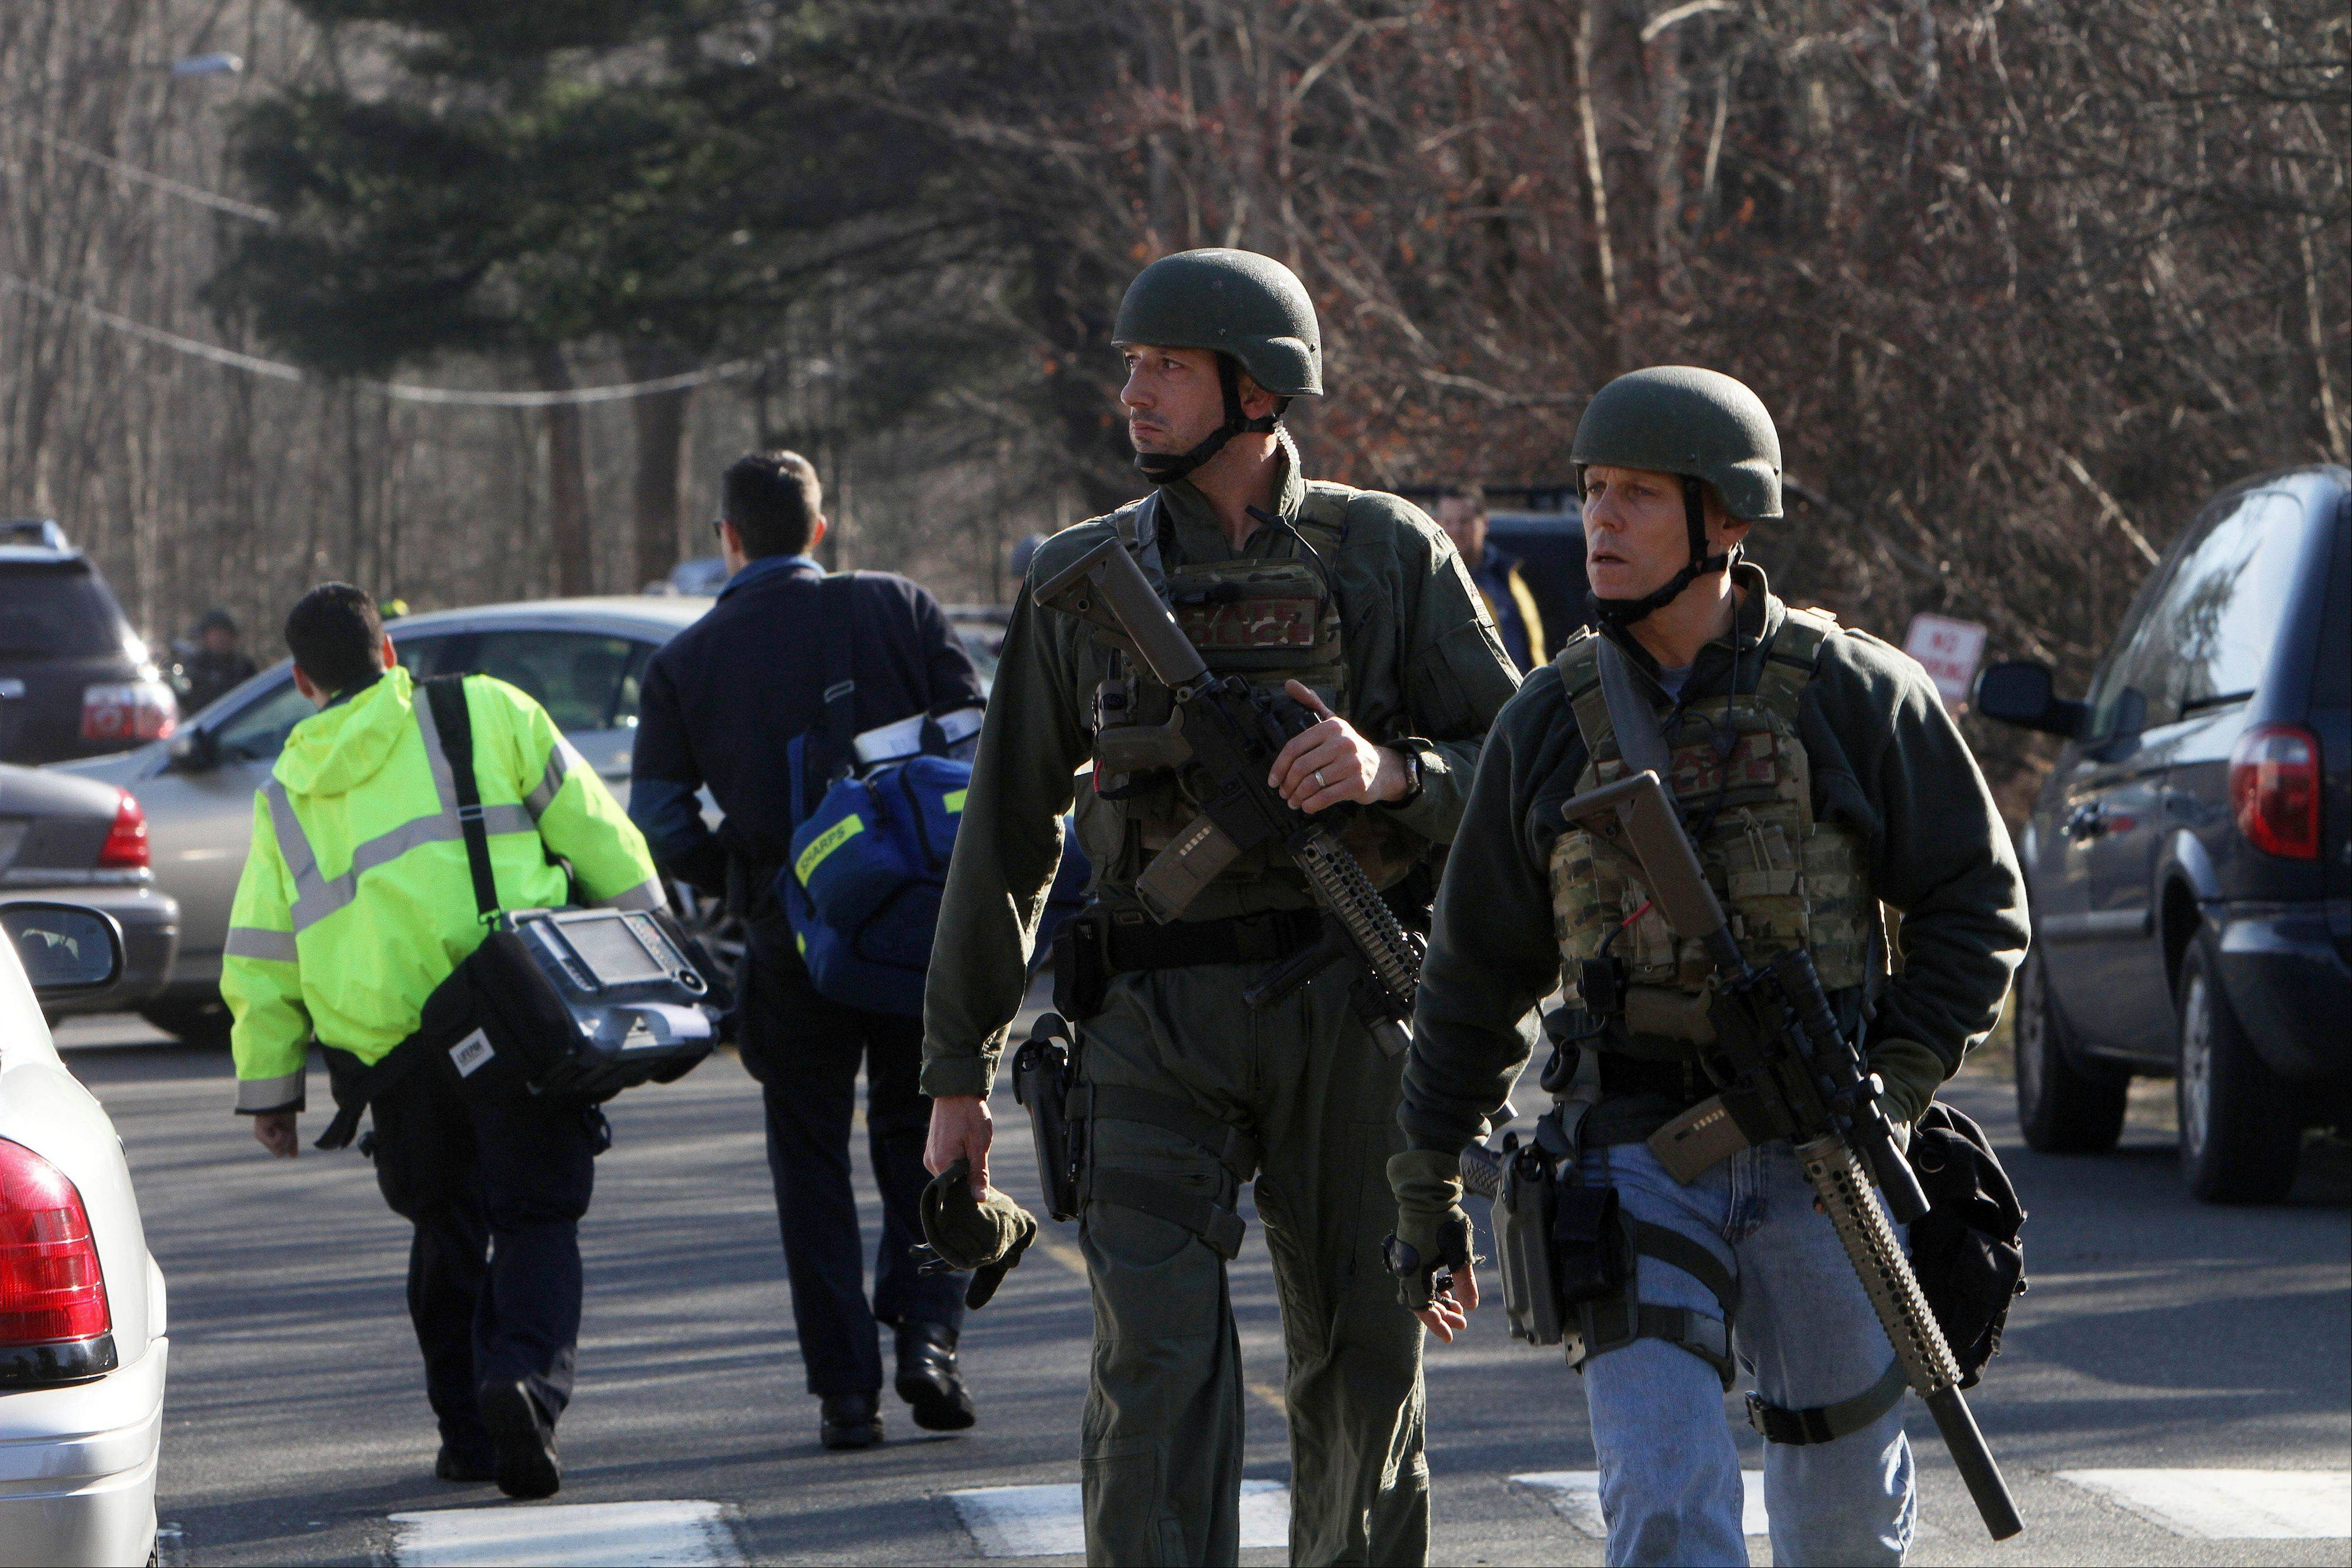 Heavily armed Connecticut State troopers are on the scene at the Sandy Hook School following a shooting at the school, Friday, Dec. 14, 2012 in Newtown, Conn.